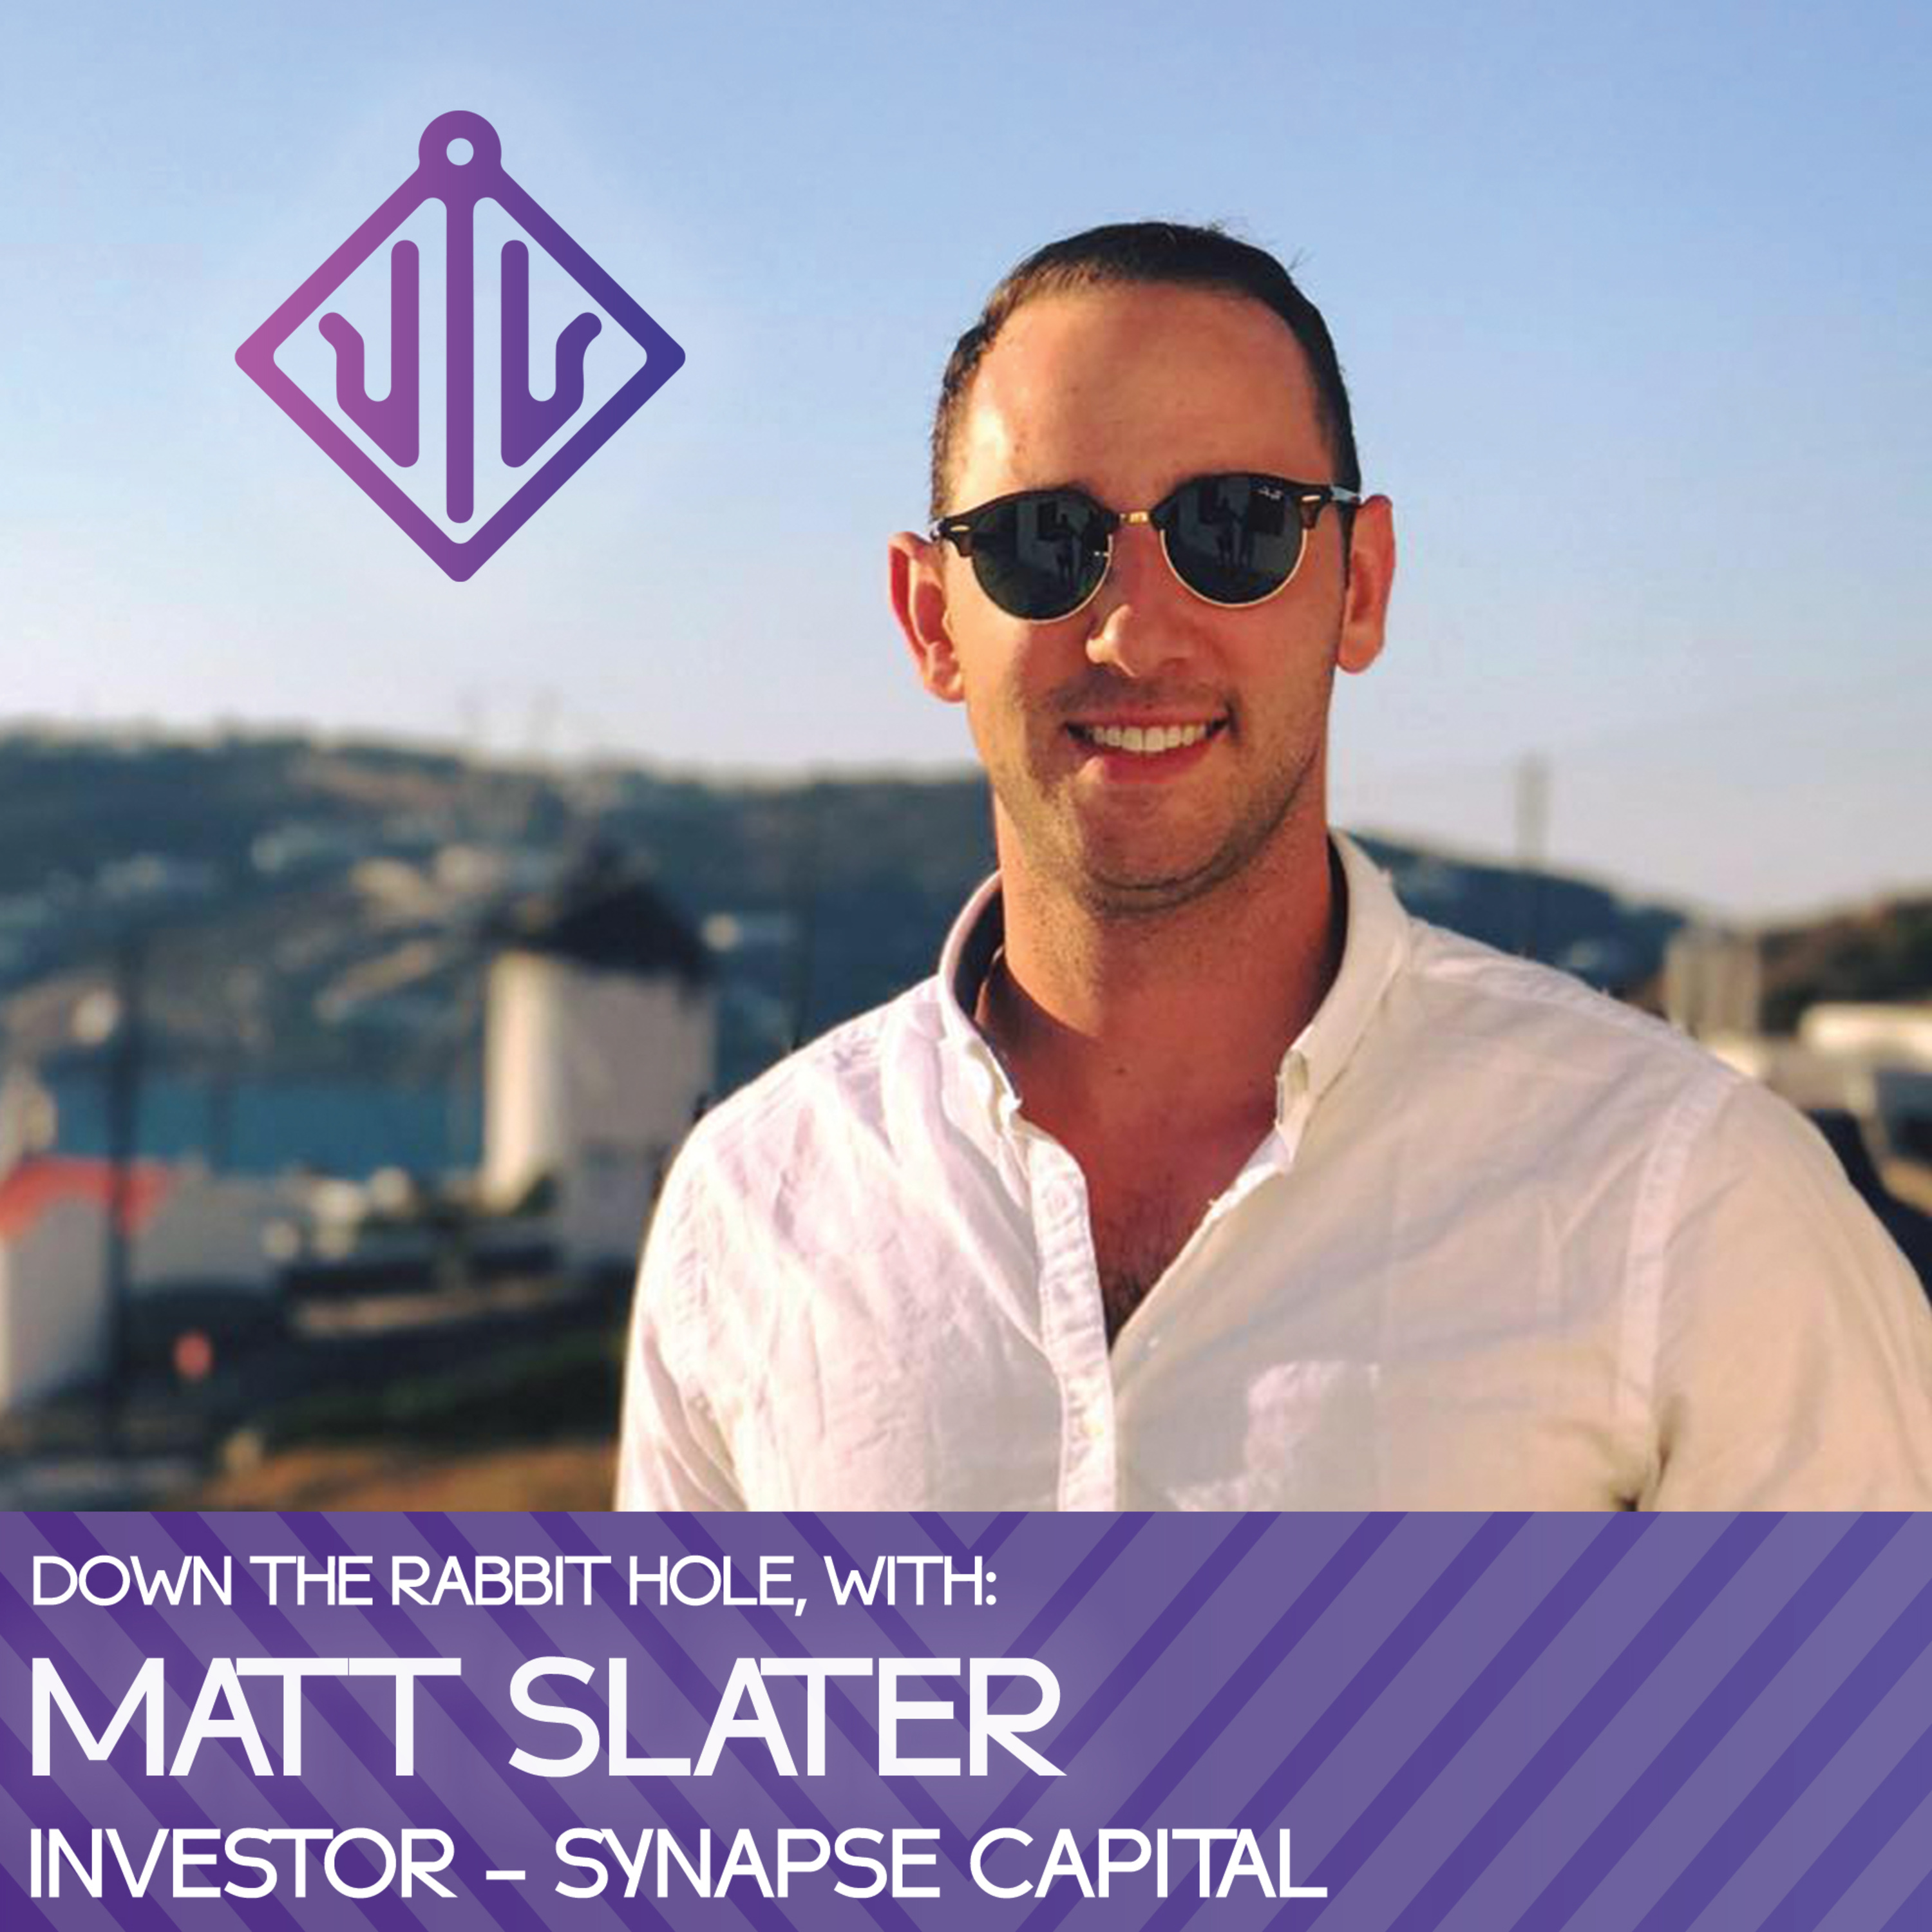 002 - with Matt Slater - Investor, Synapse Capital - Decentralized Exchanges and Democratized Investment